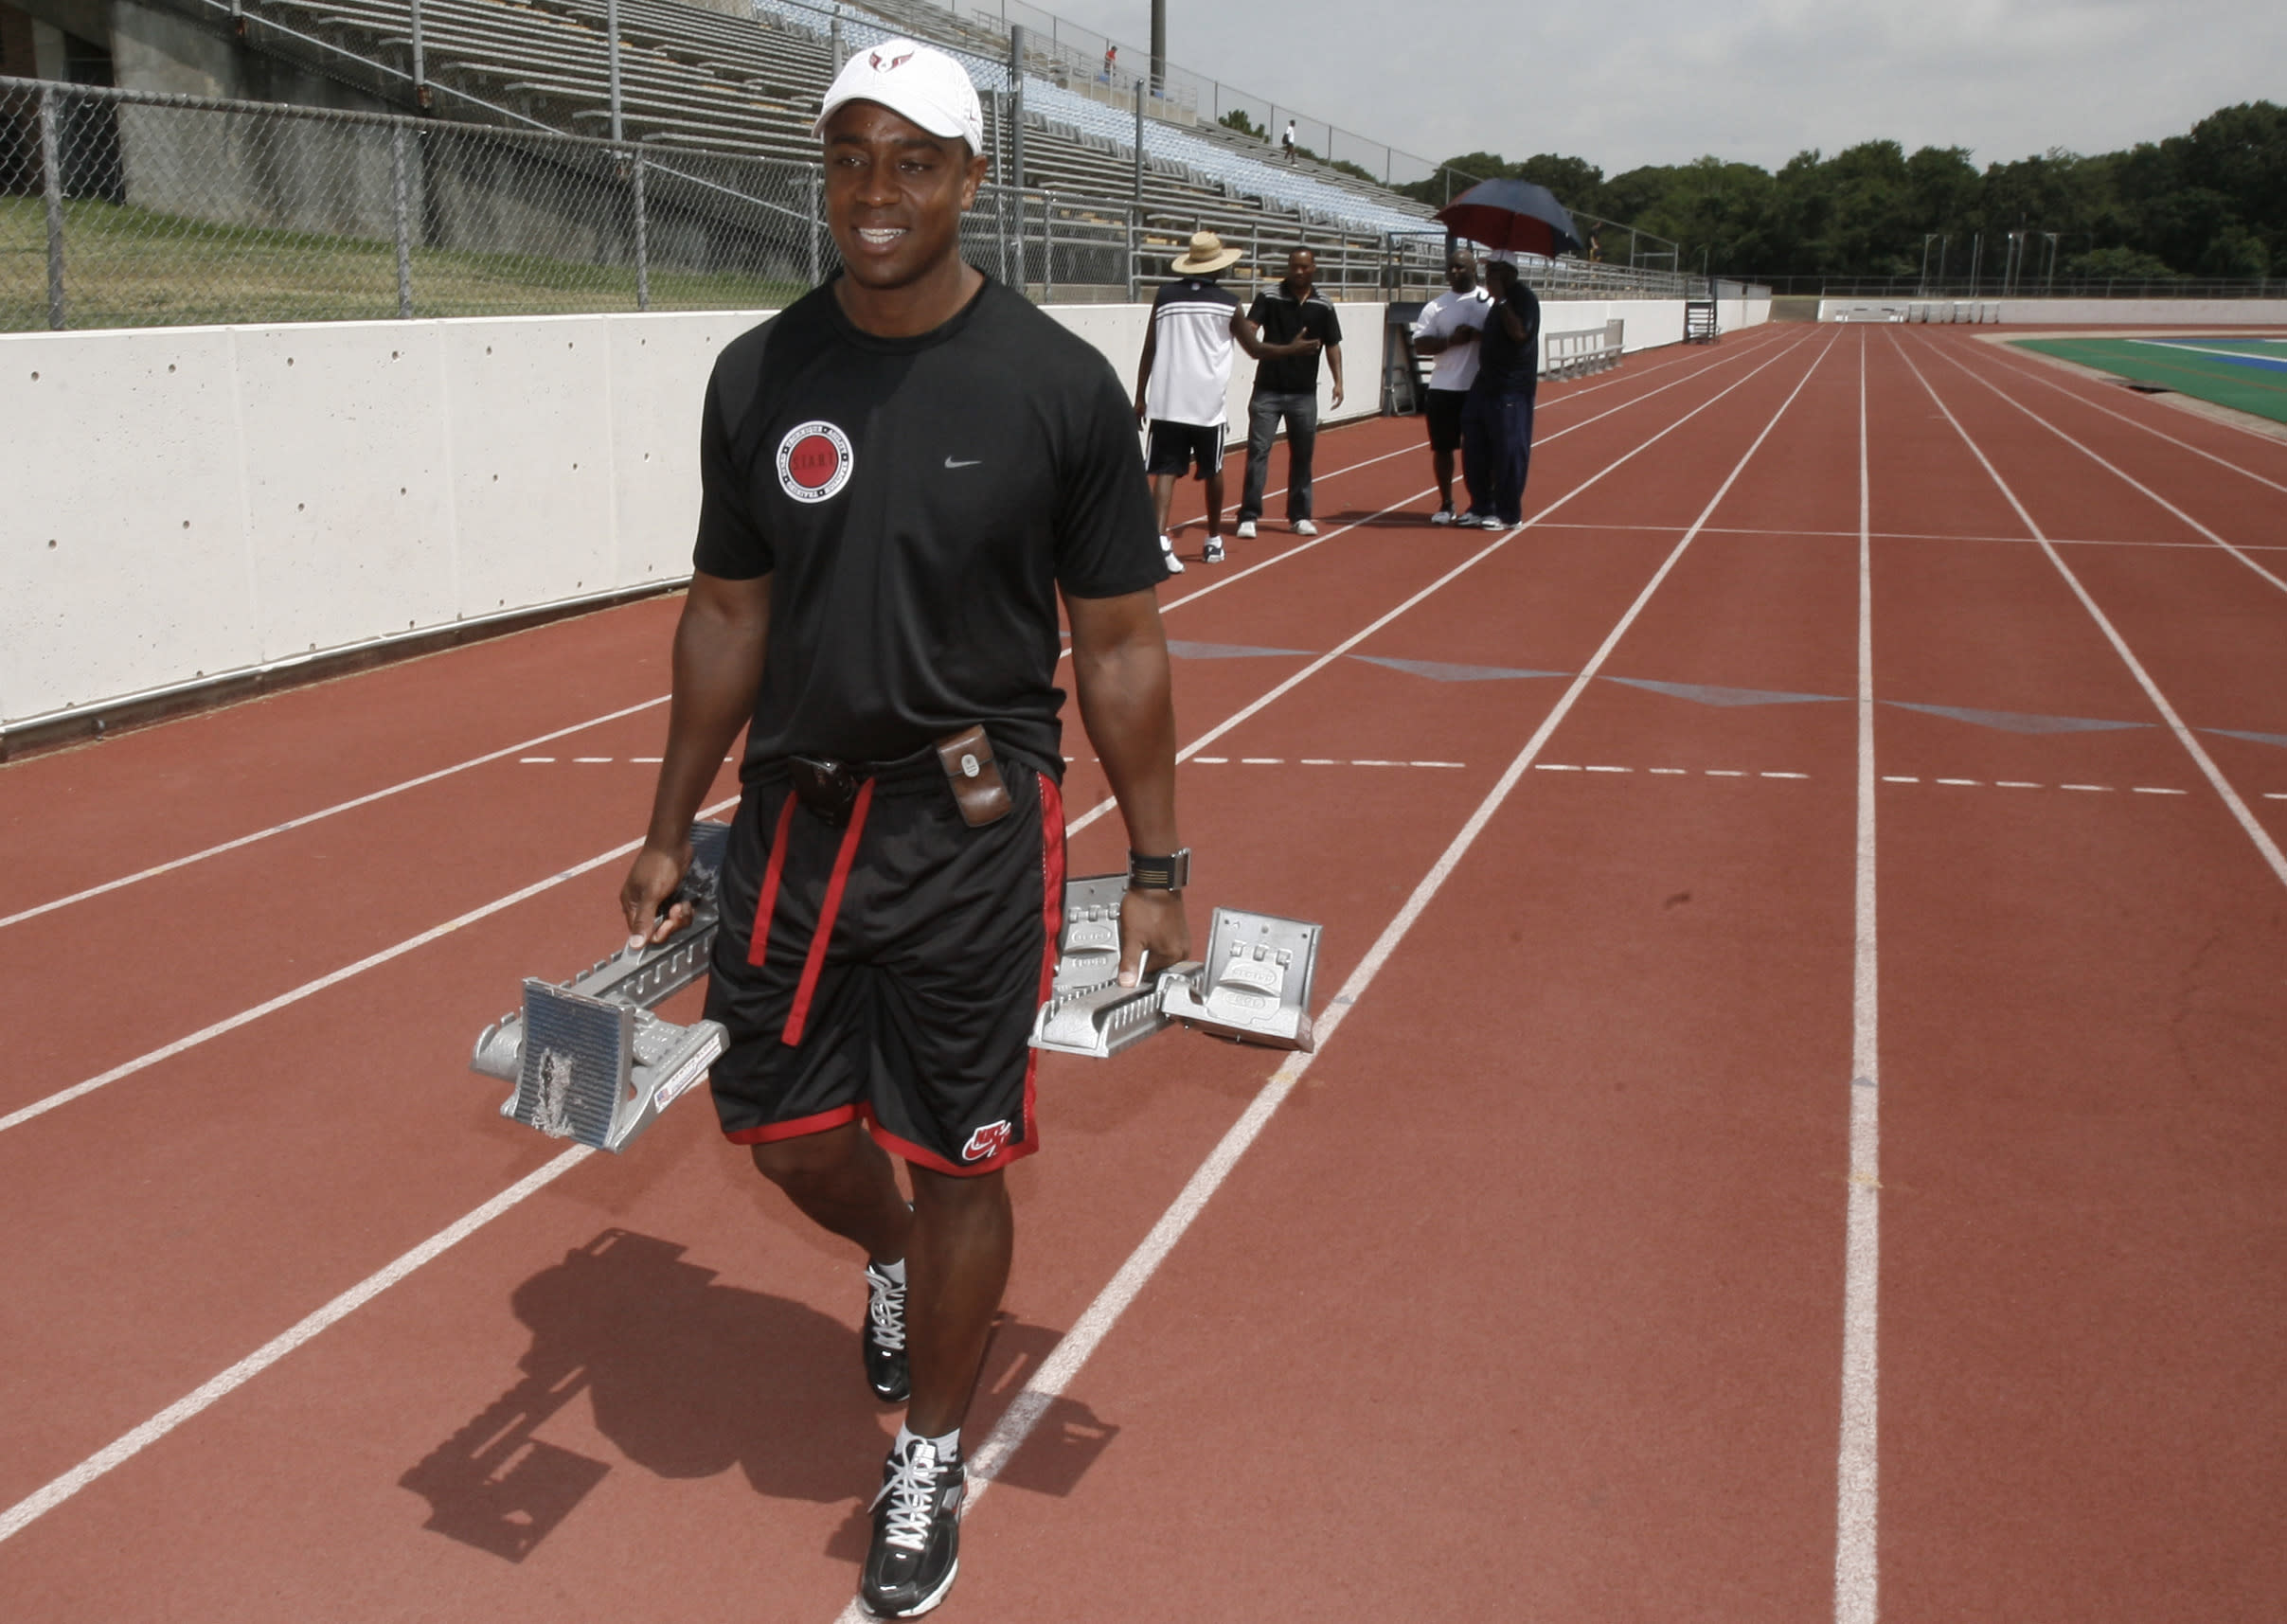 Track coach Drummond gets 8-year doping suspension